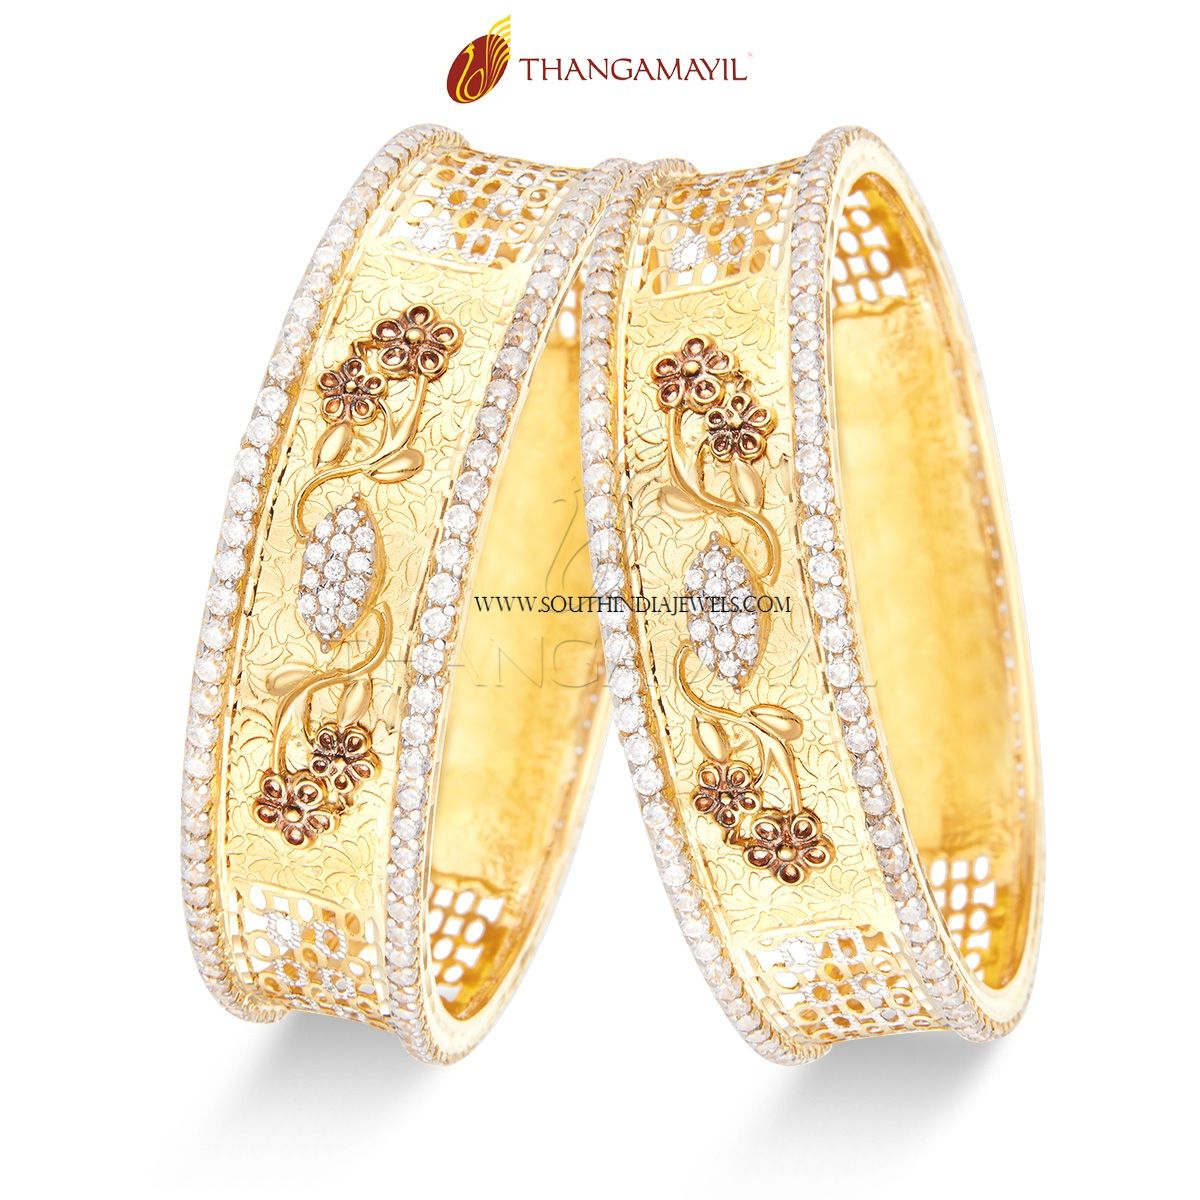 Gold Stone Bangles from Thangamayil Jewellery | Bangle, Stone and ...